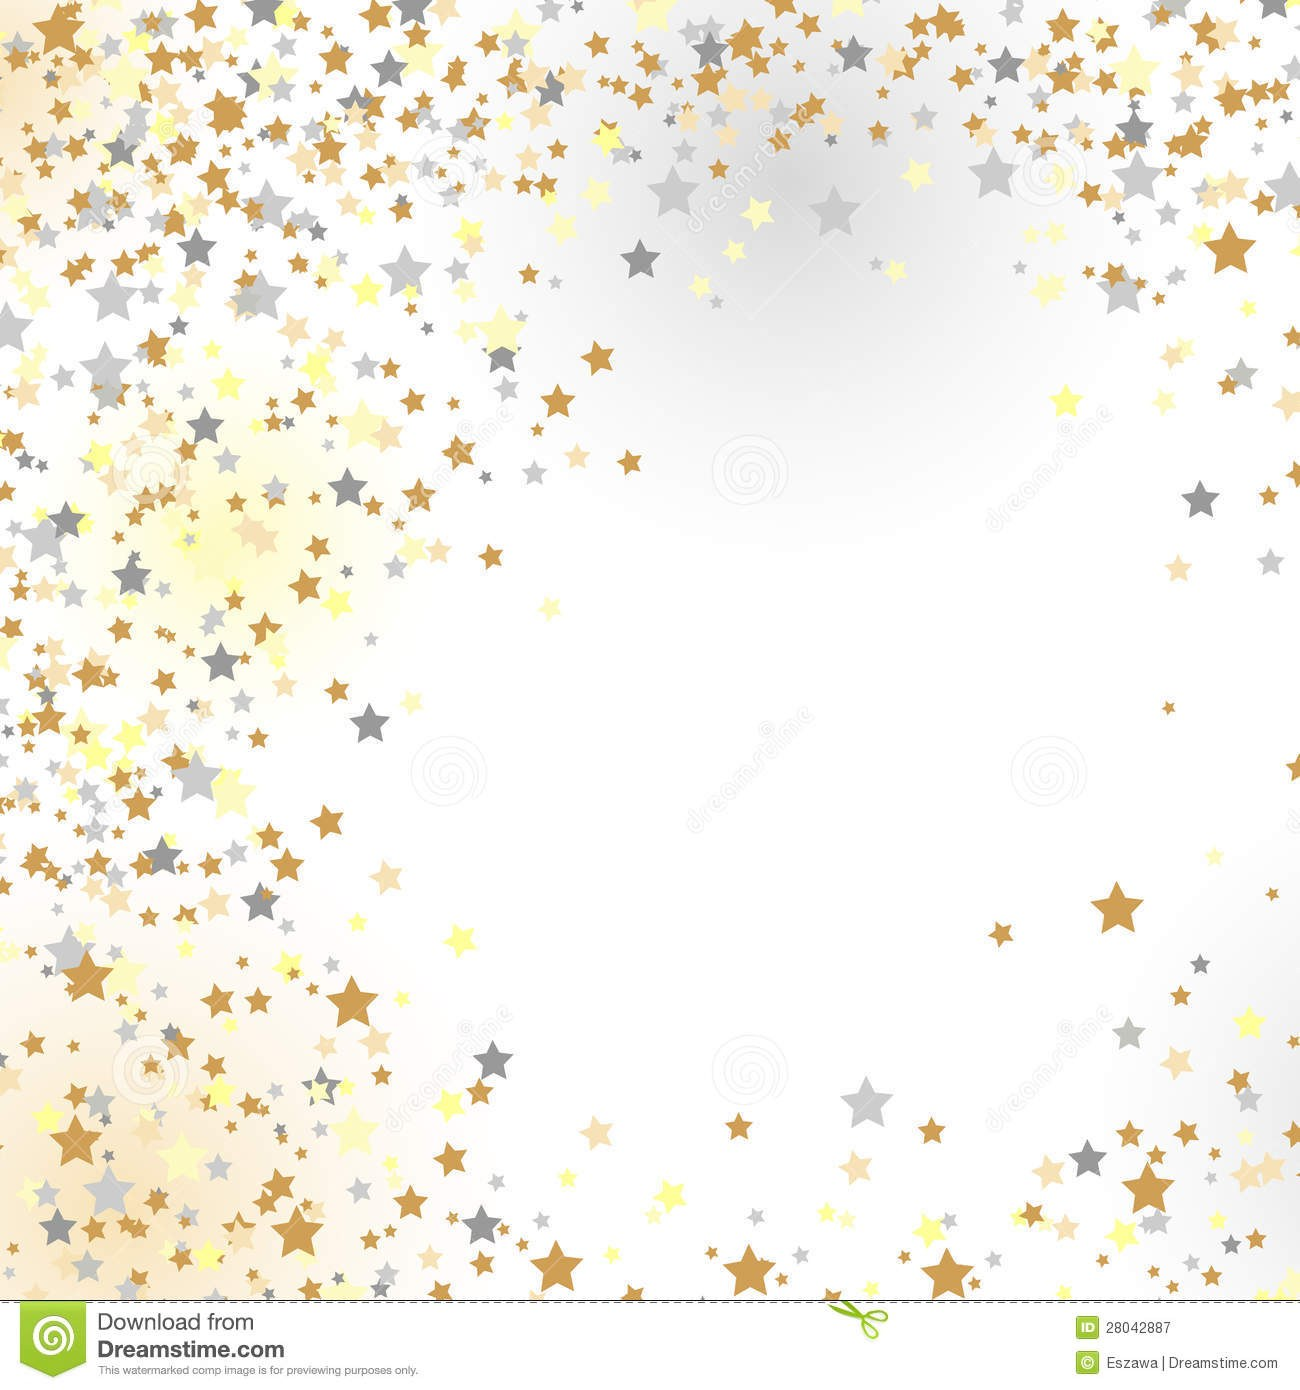 Celebration clipart border. Lacalabaza new year merry